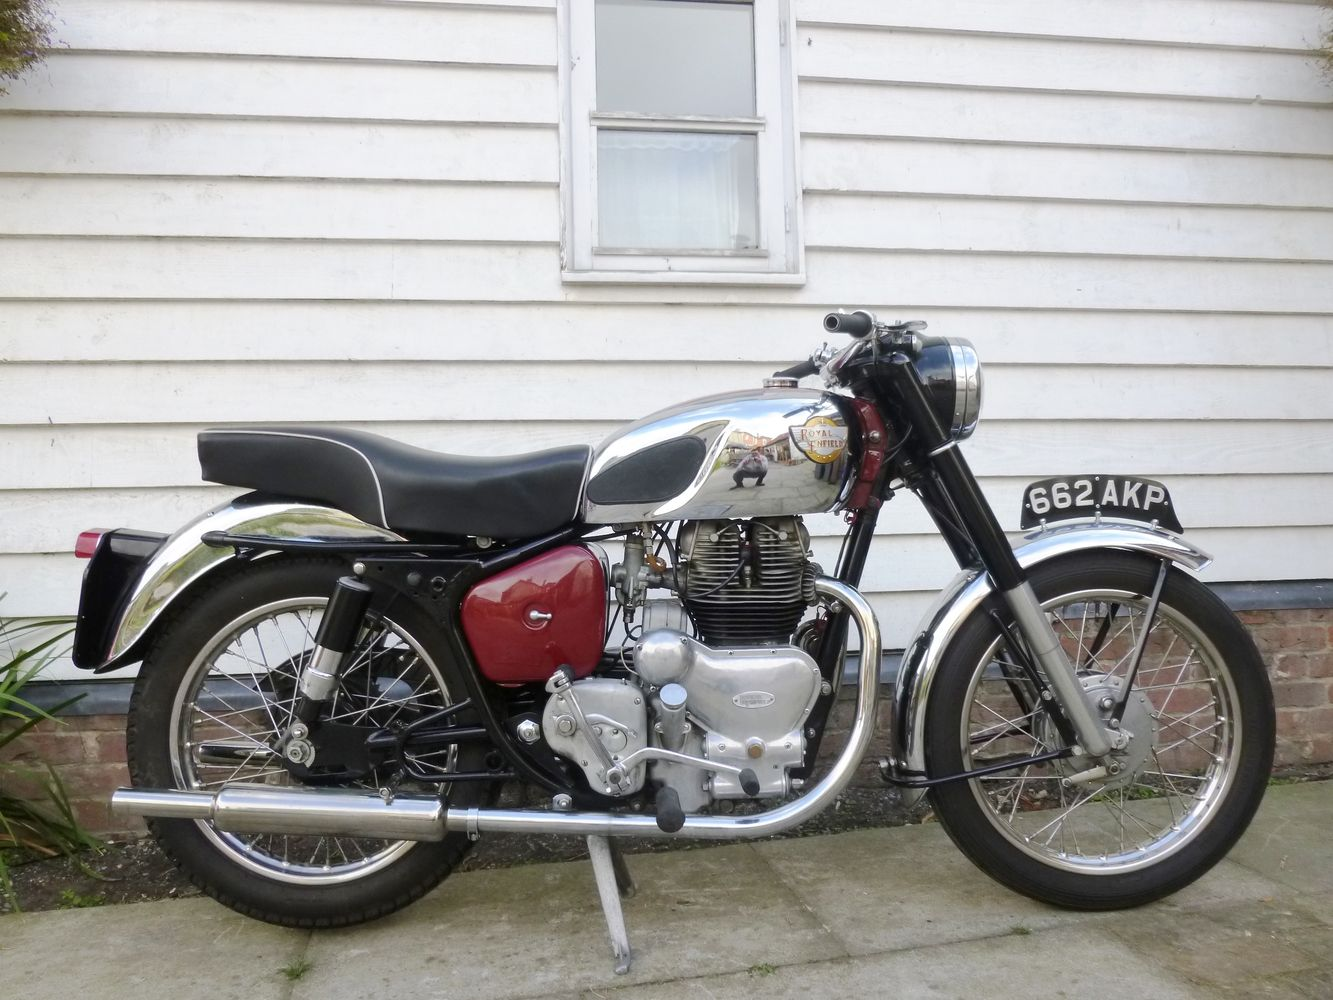 Buy a BritishEuropean vTwin All the vtwins below were found for sale on the same day 24 August 2014 62 Classic vtwins from 5144 to 90000